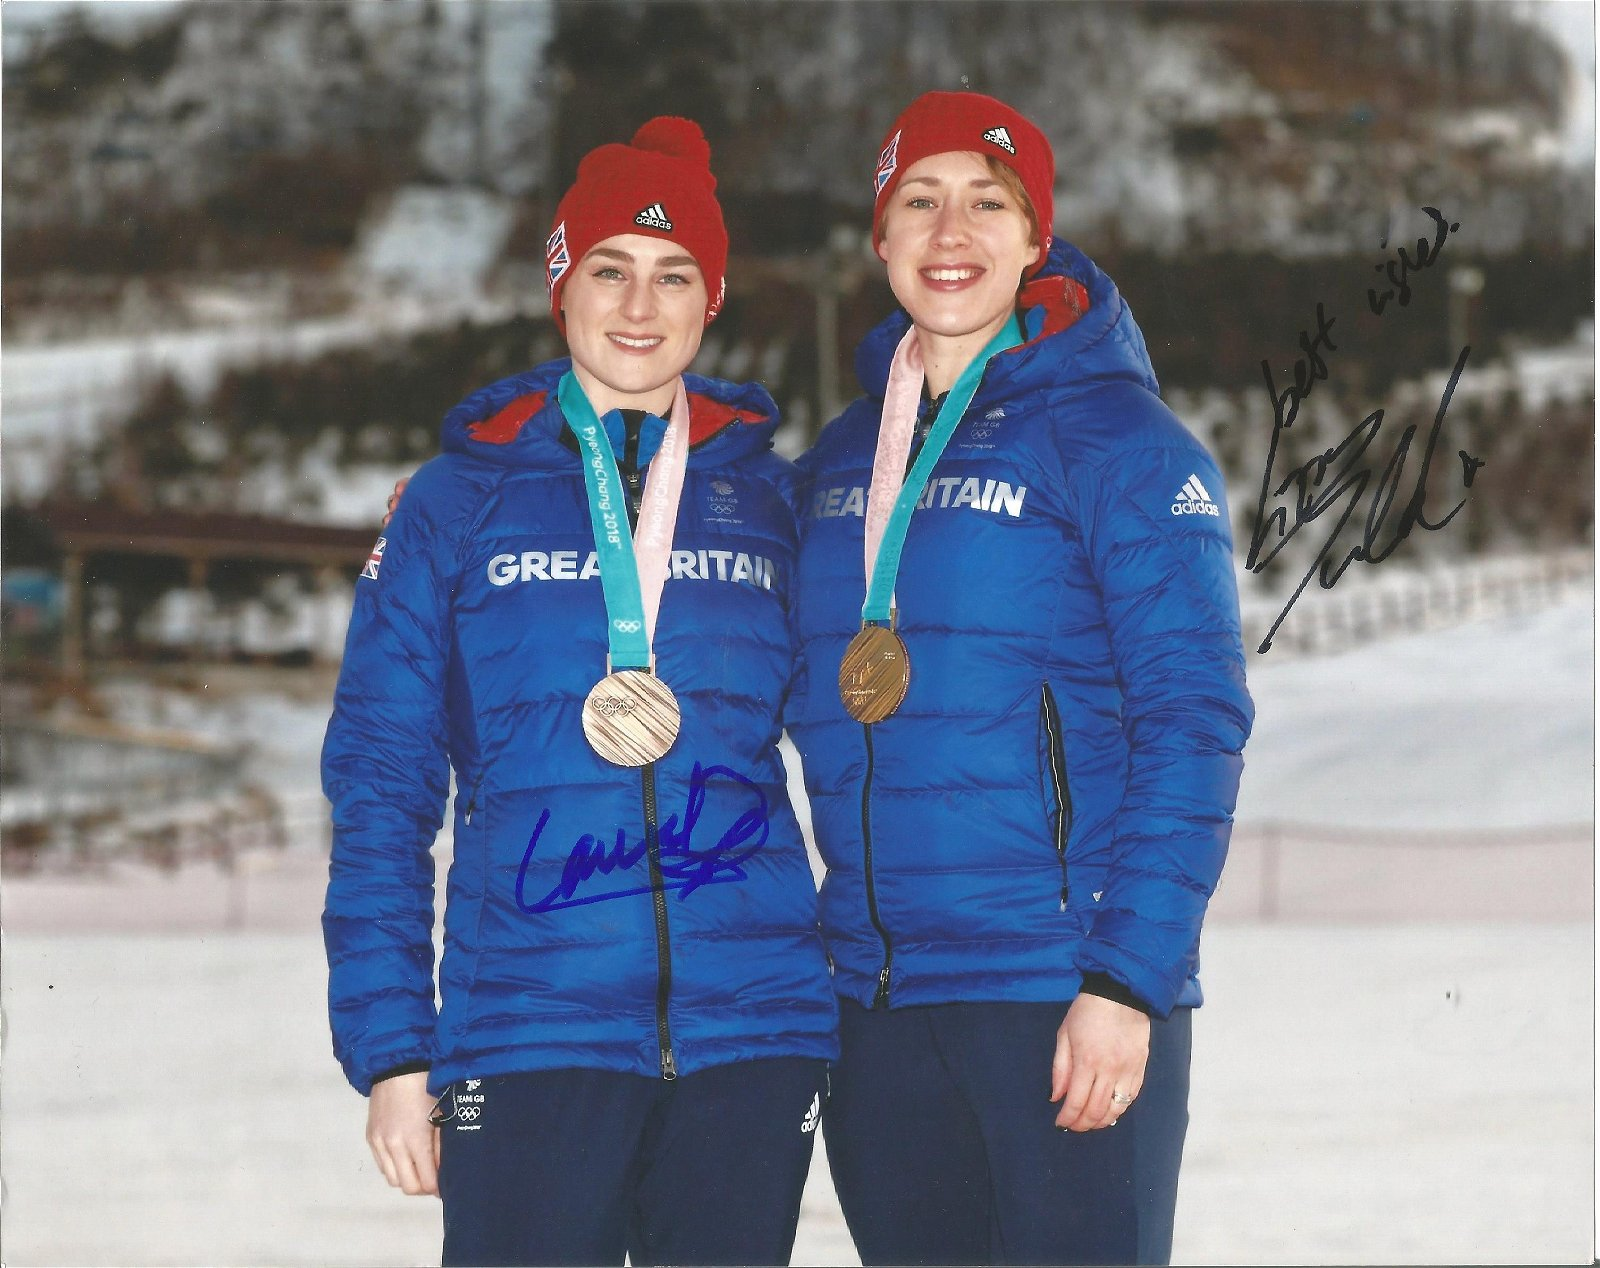 Laura Deas and Lizzy Yarnold Signed Winter Olympics